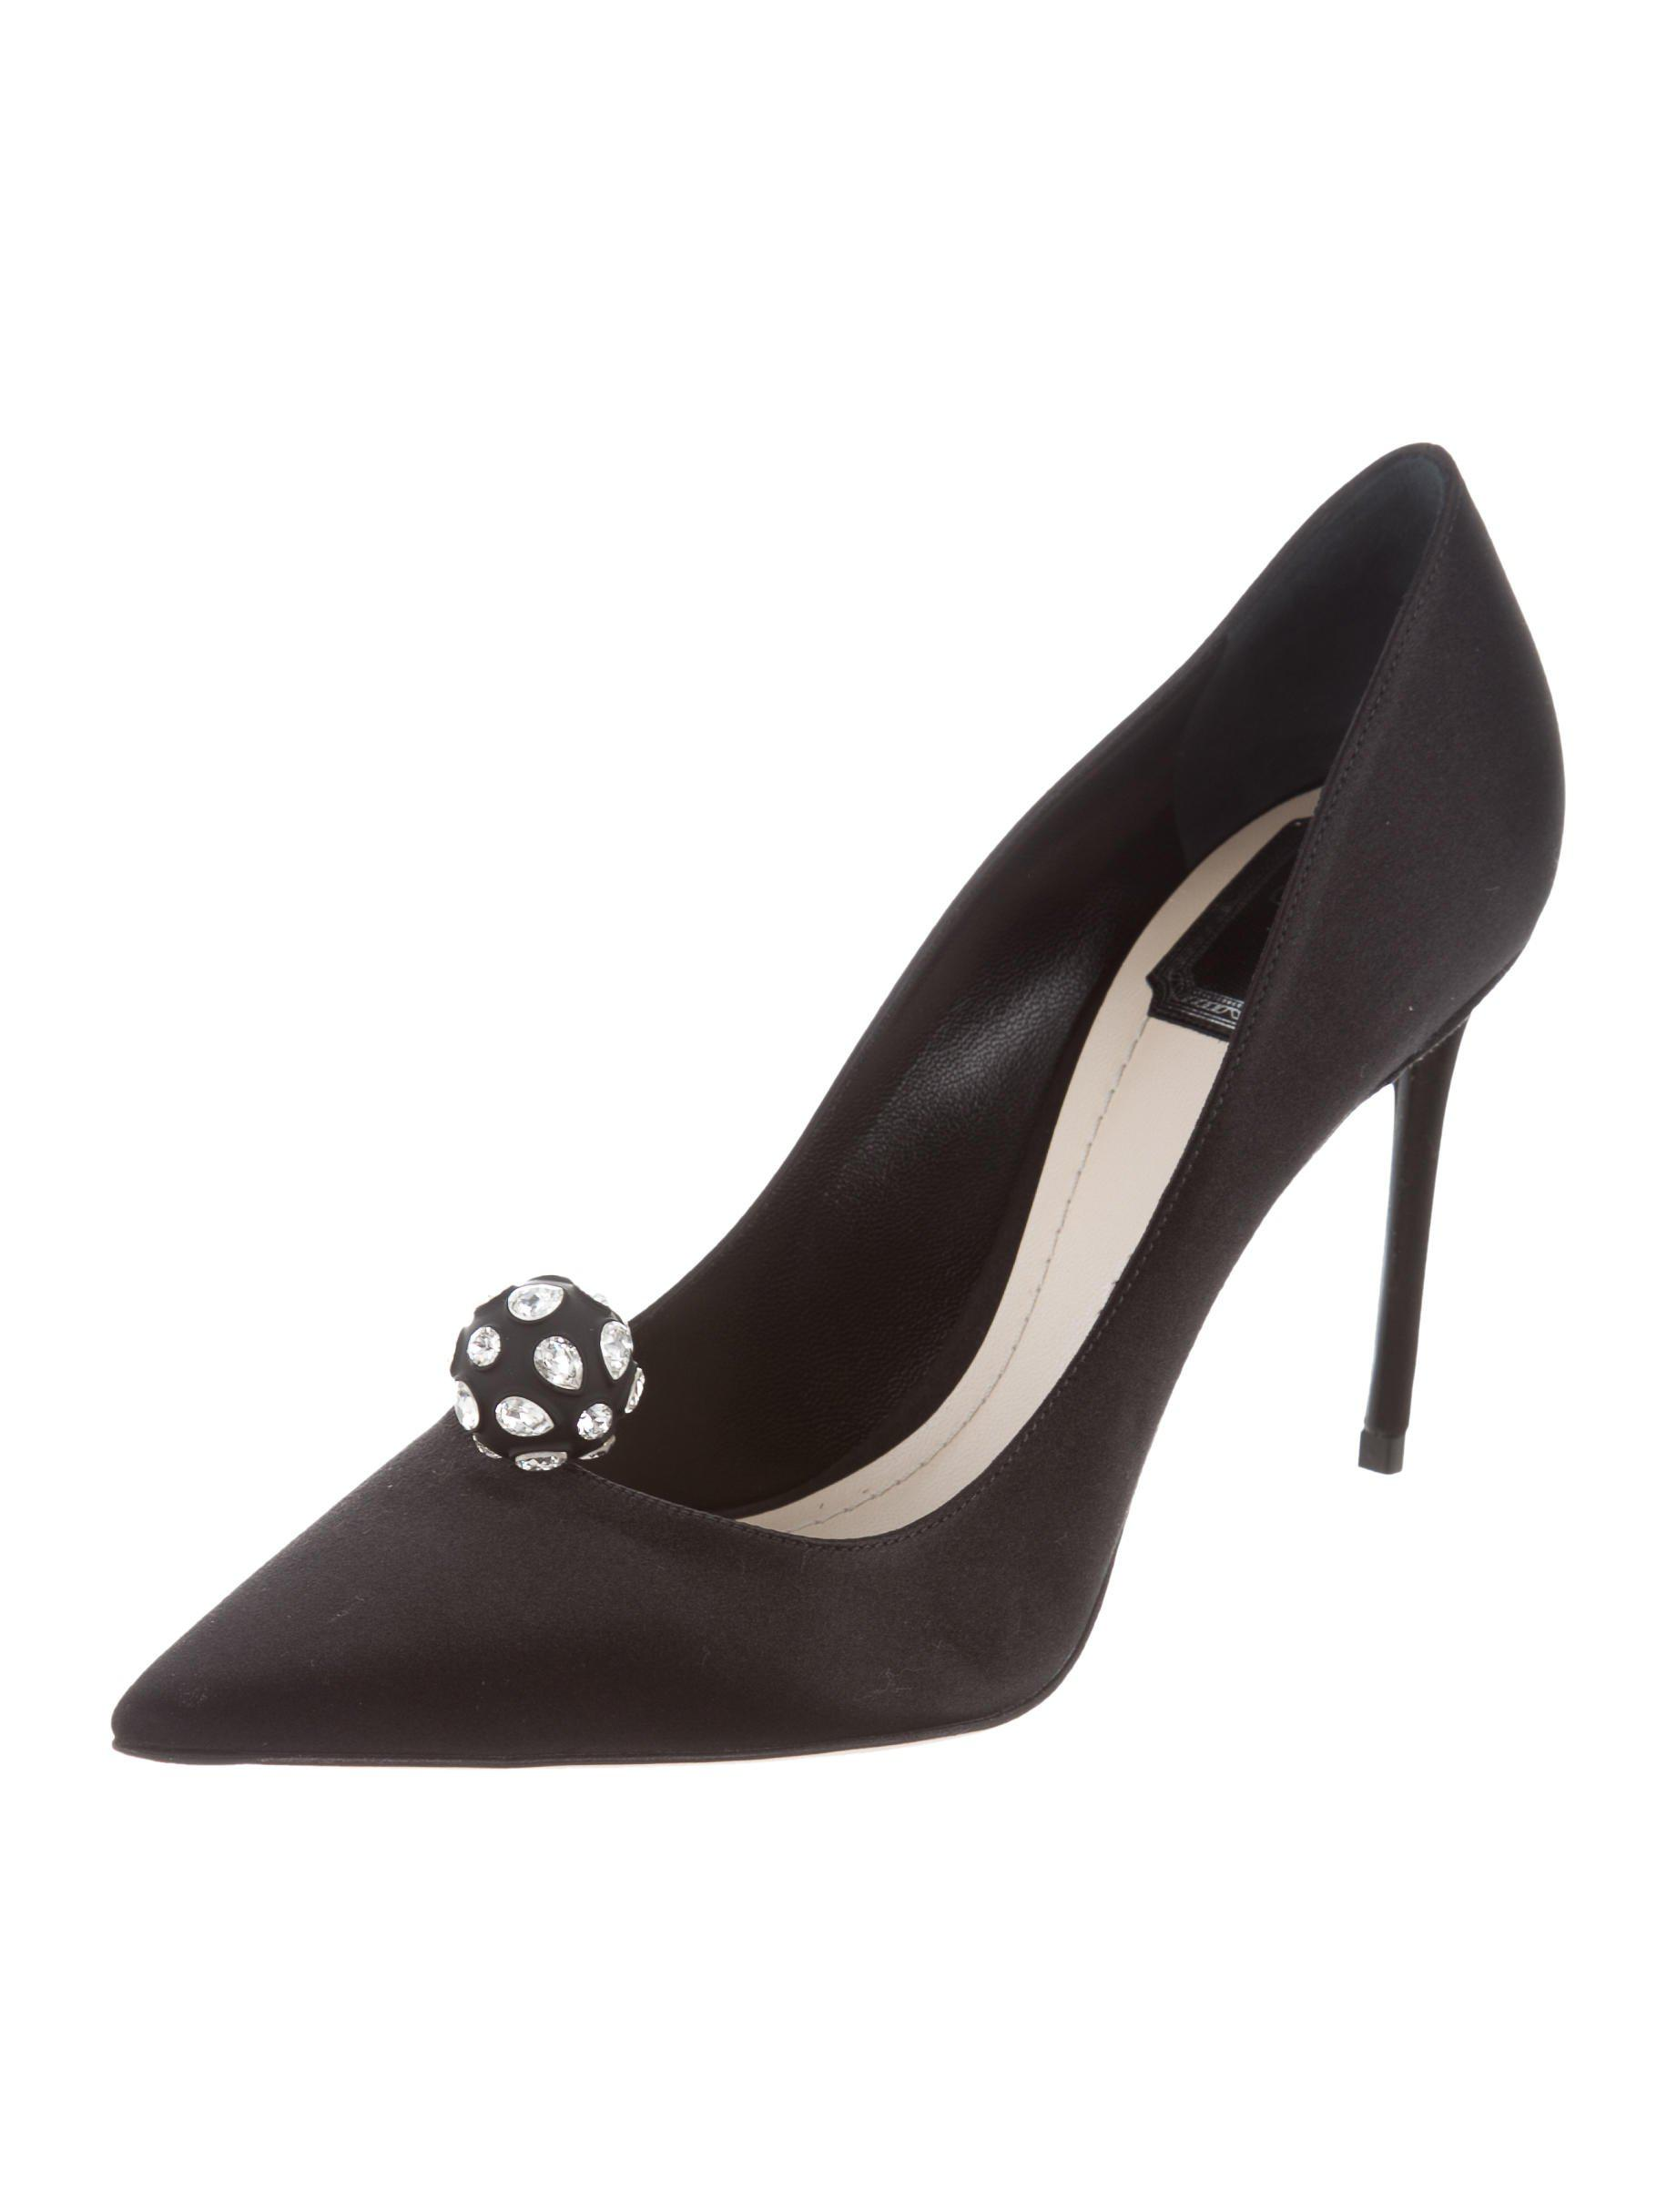 quality free shipping 2014 unisex sale online Christian Dior Felt Cap-Toe Pumps cheap sale really discounts xmKfy